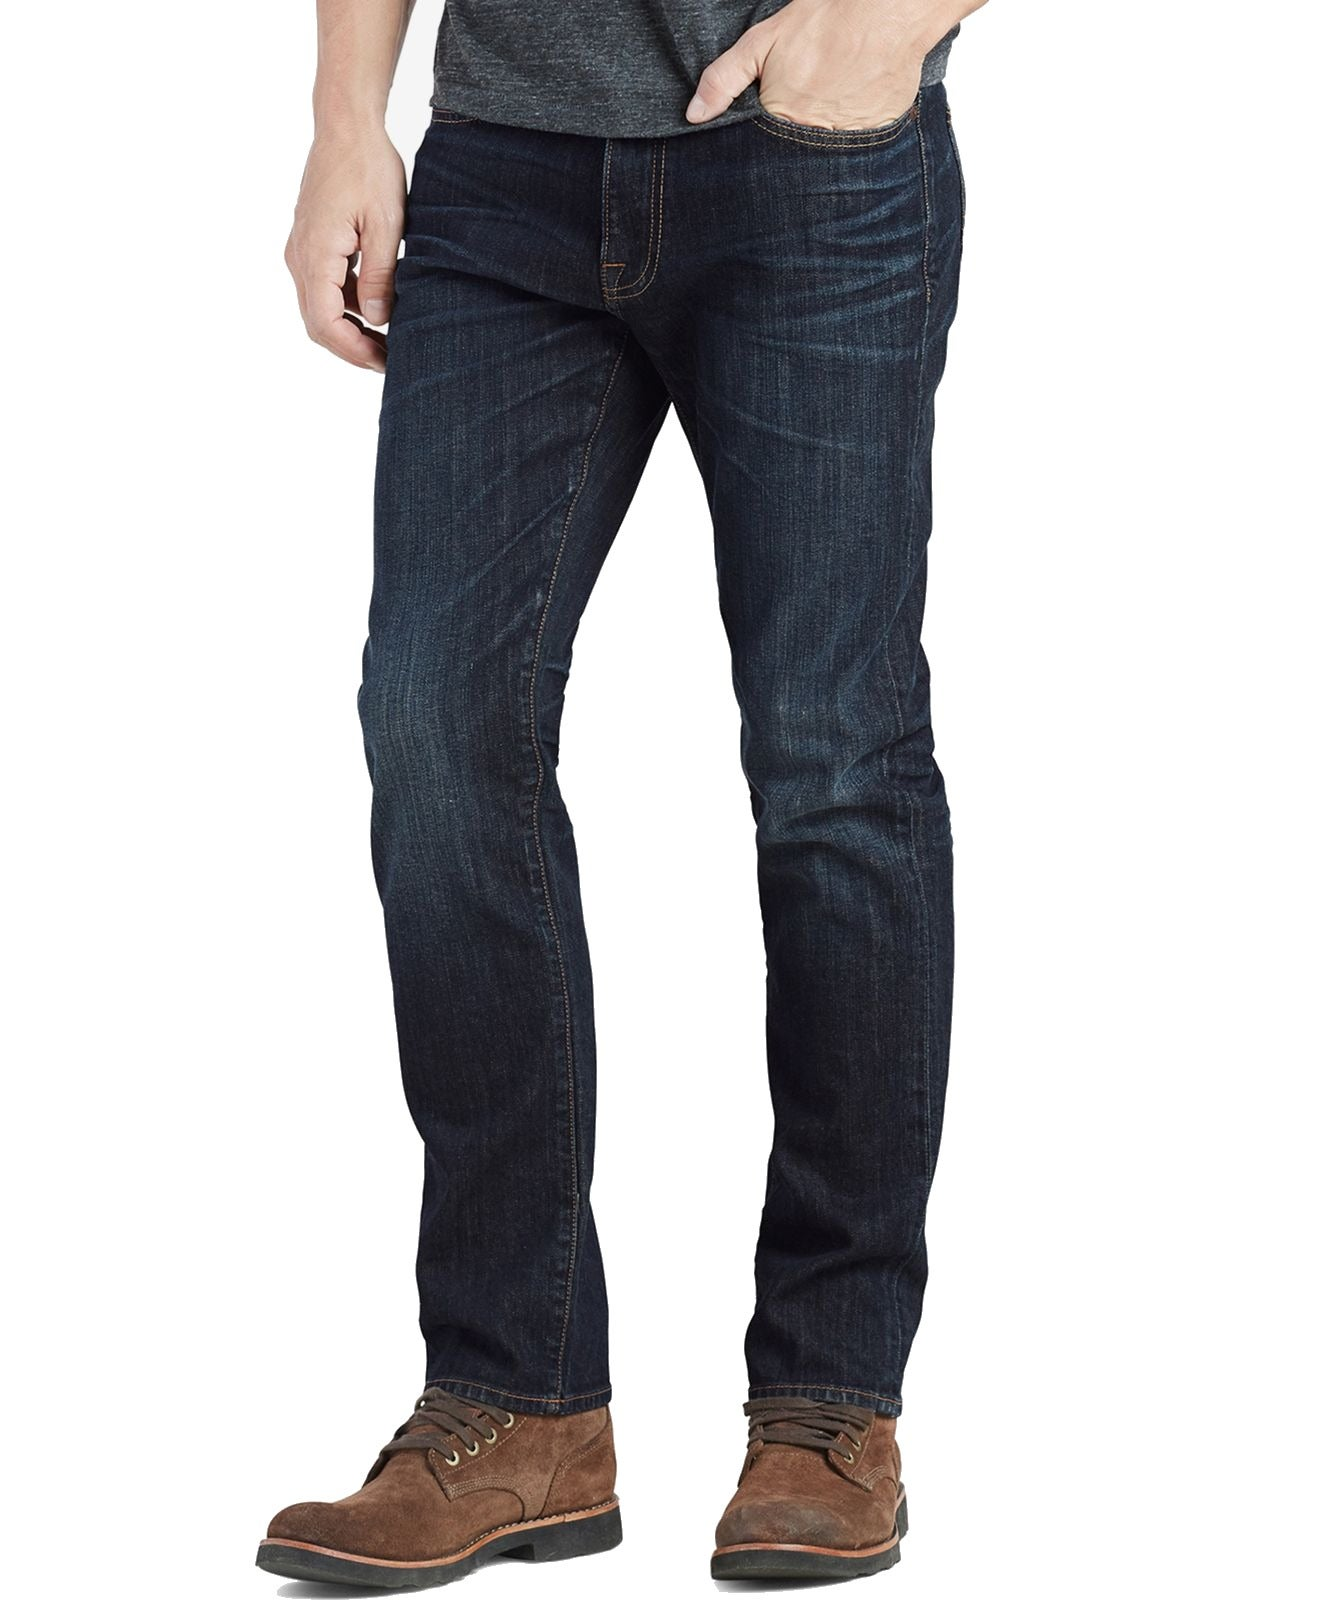 Lucky Brand Mens Jeans Blue Size 36X34 410 Athletic Slim Stretch